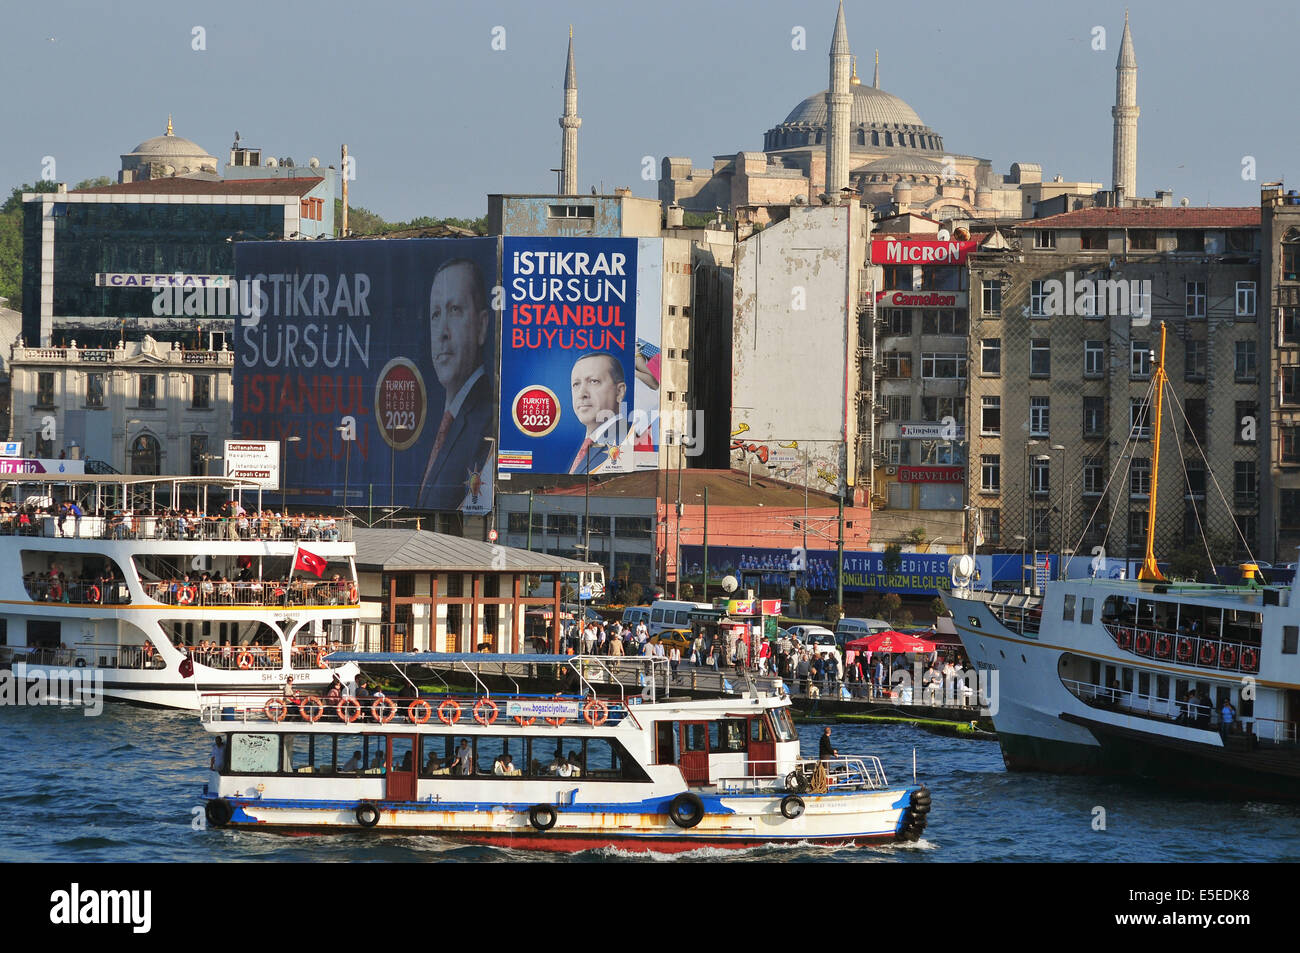 Large election campaign billboards of Turkey's ruling AKP party with portraits of AKP leader and current prime - Stock Image